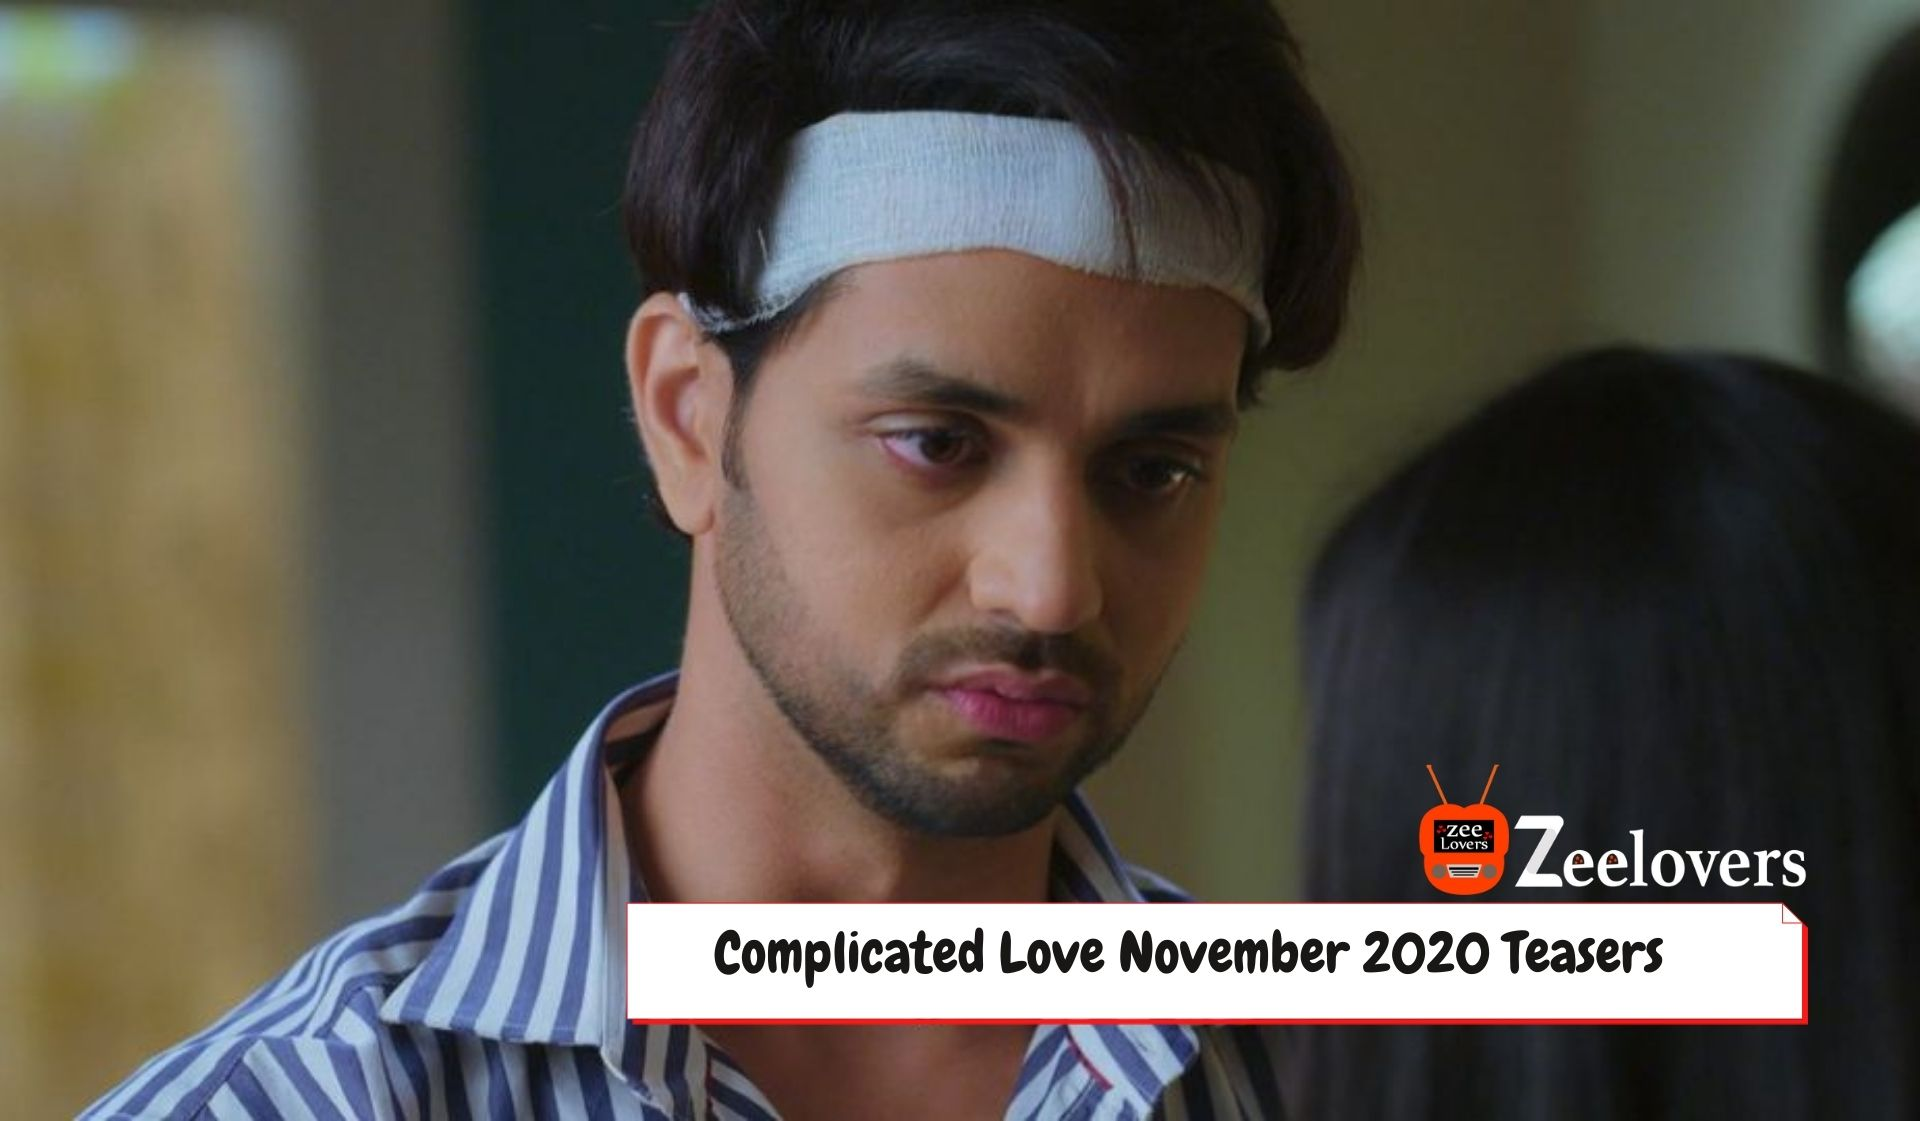 Complicated LoveTeasersNovember 2020